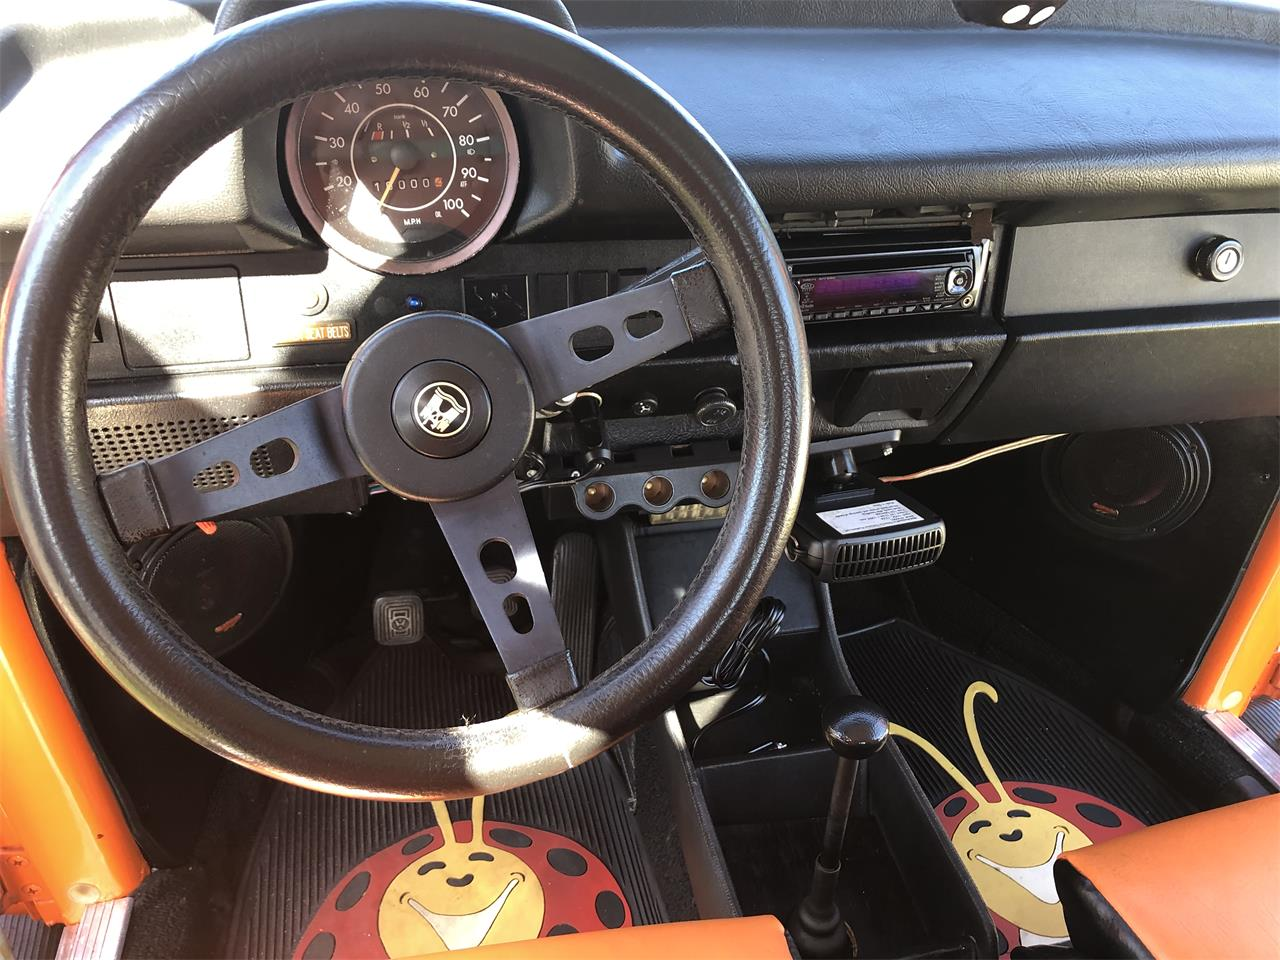 Large Picture of Classic 1973 Super Beetle located in Florida - $10,000.00 Offered by a Private Seller - PMXE